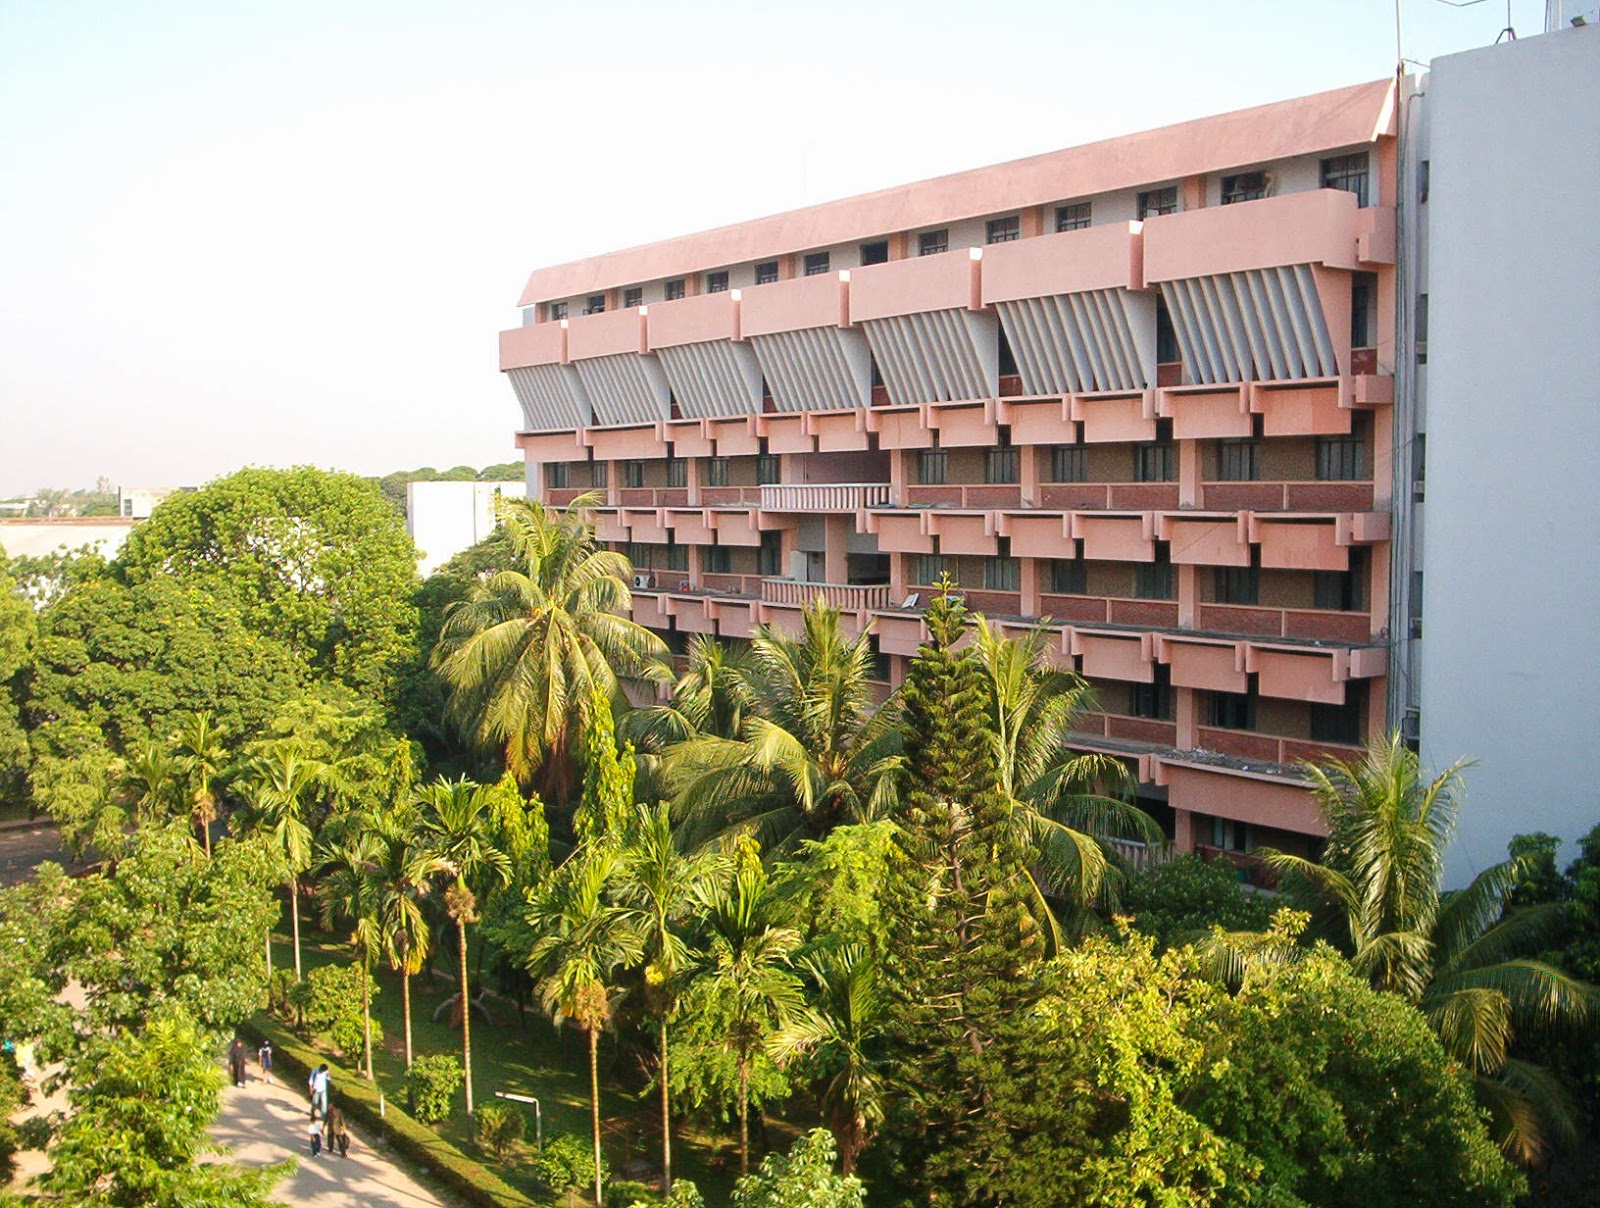 Bangladesh University of Engineering and Technology-BUET